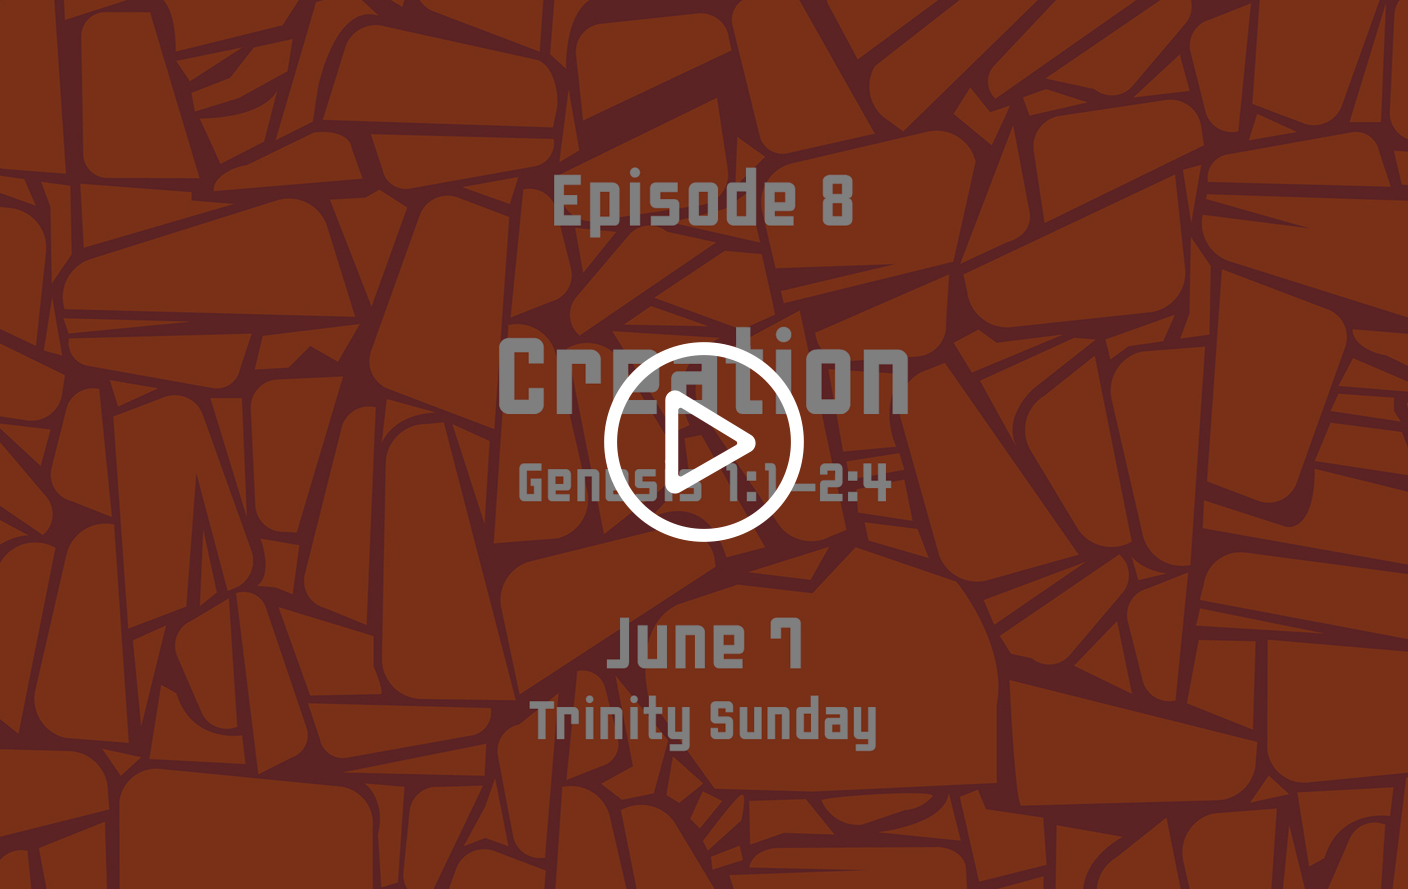 Family Sunday School – June 7, 2020  Trinity Sunday